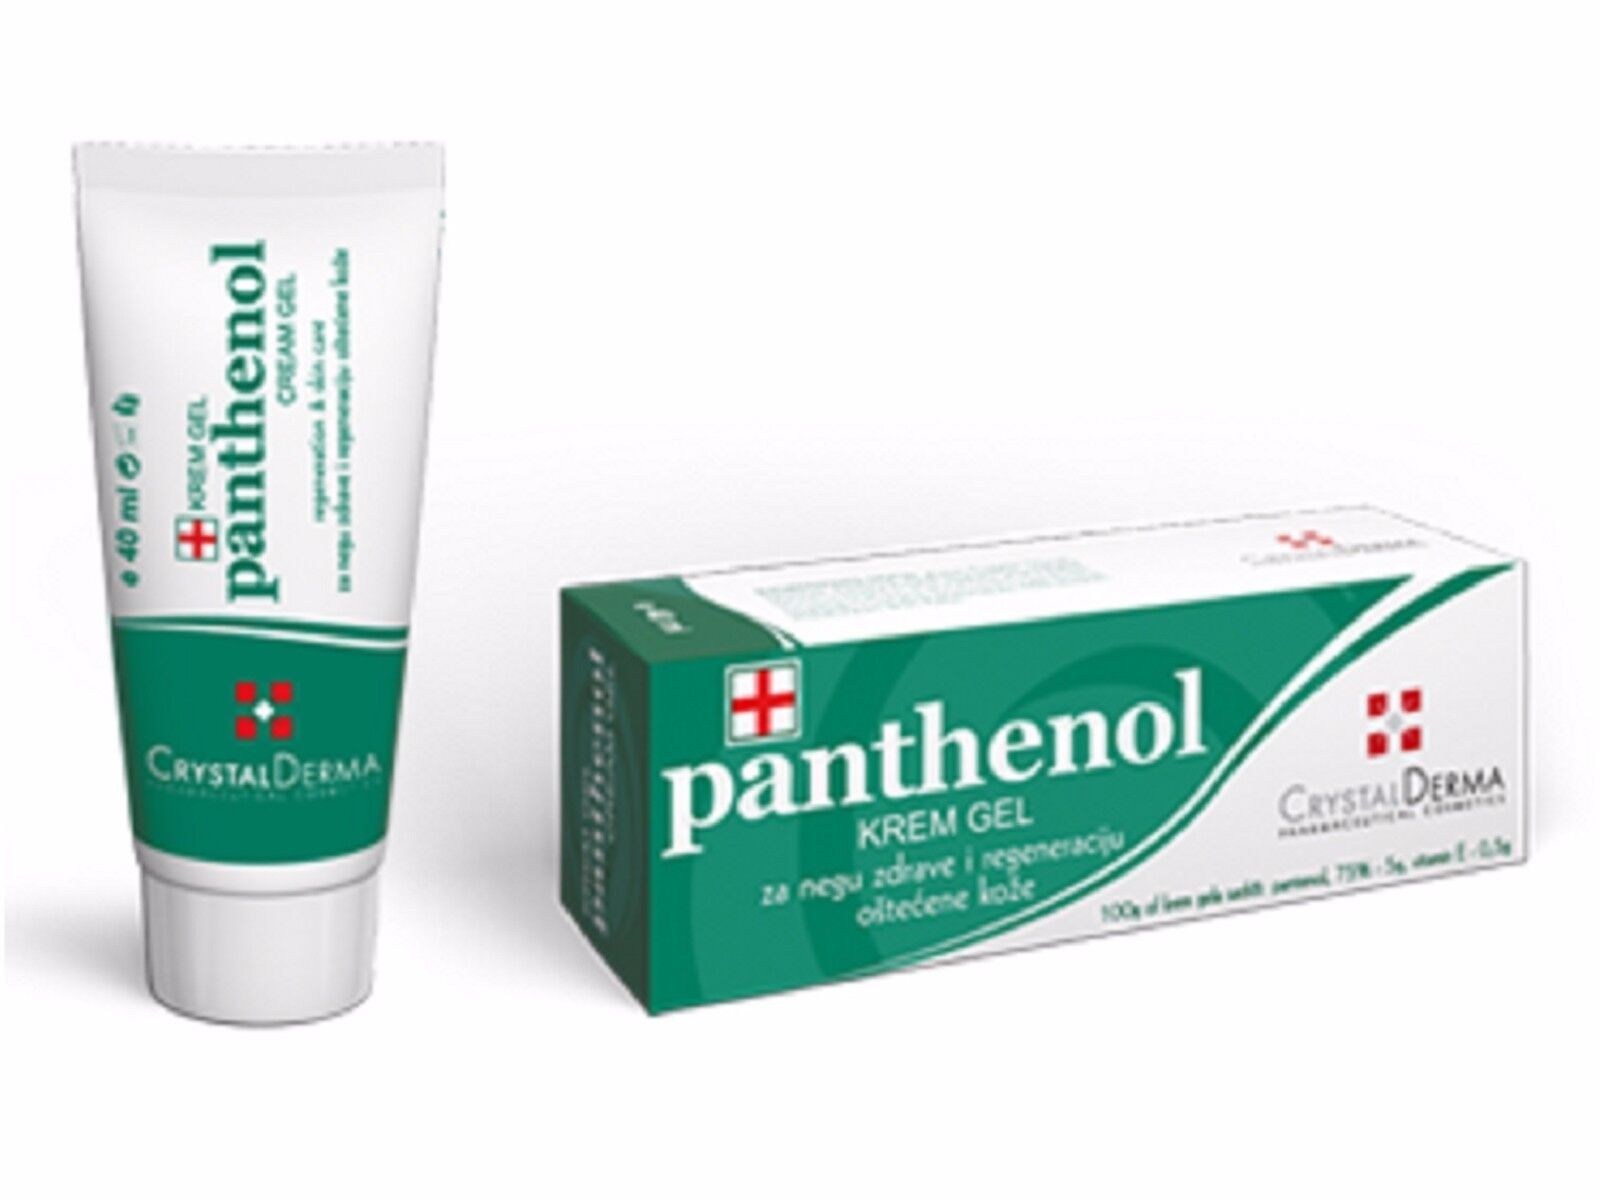 The drug Panthenol (ointment) 42